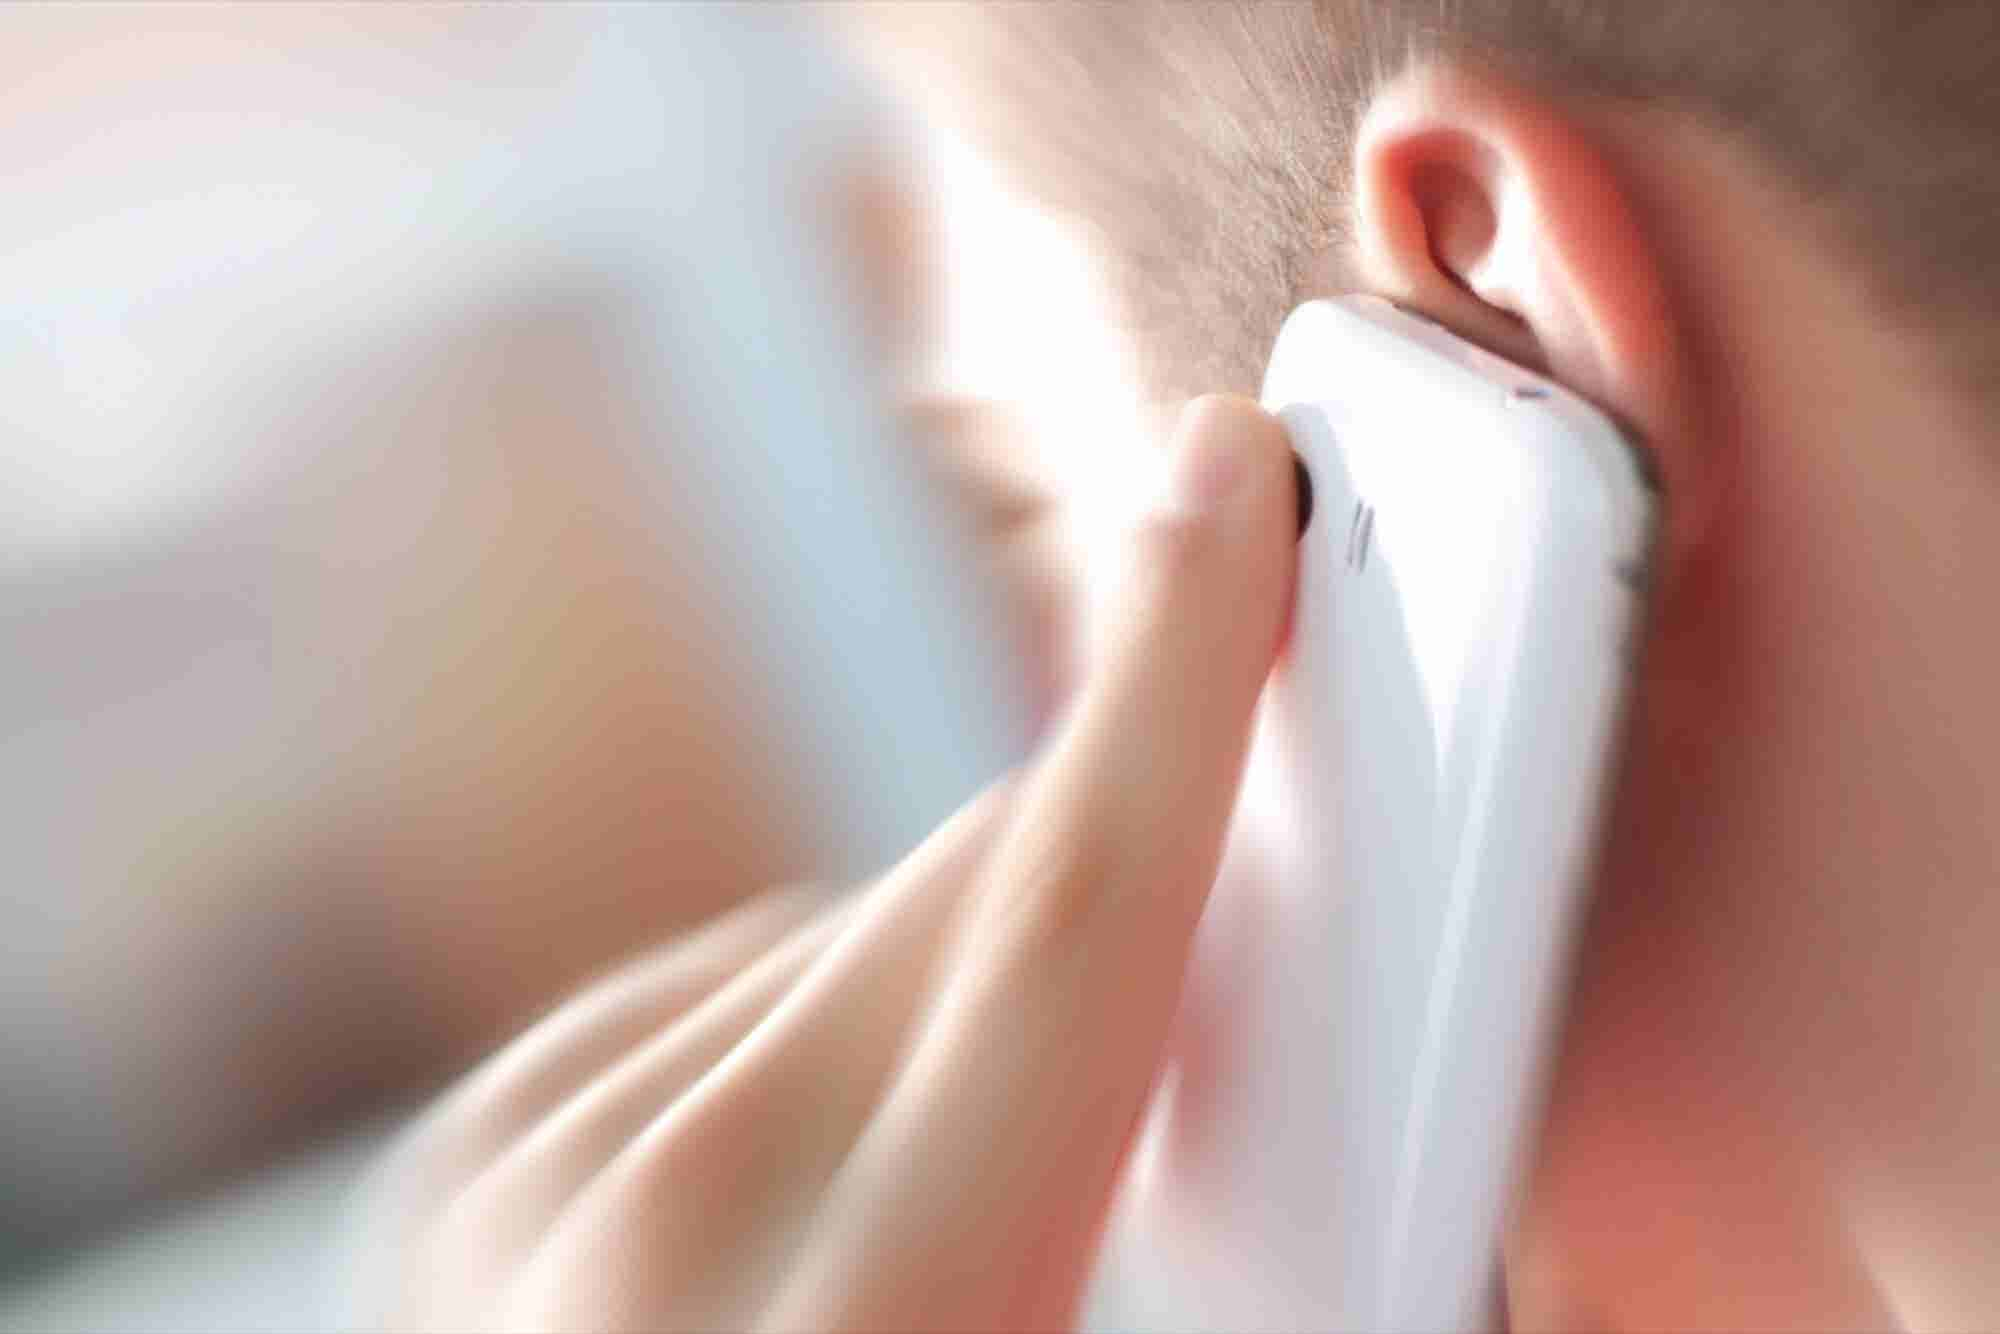 Amazon Invents an Ear-Scanning Smartphone